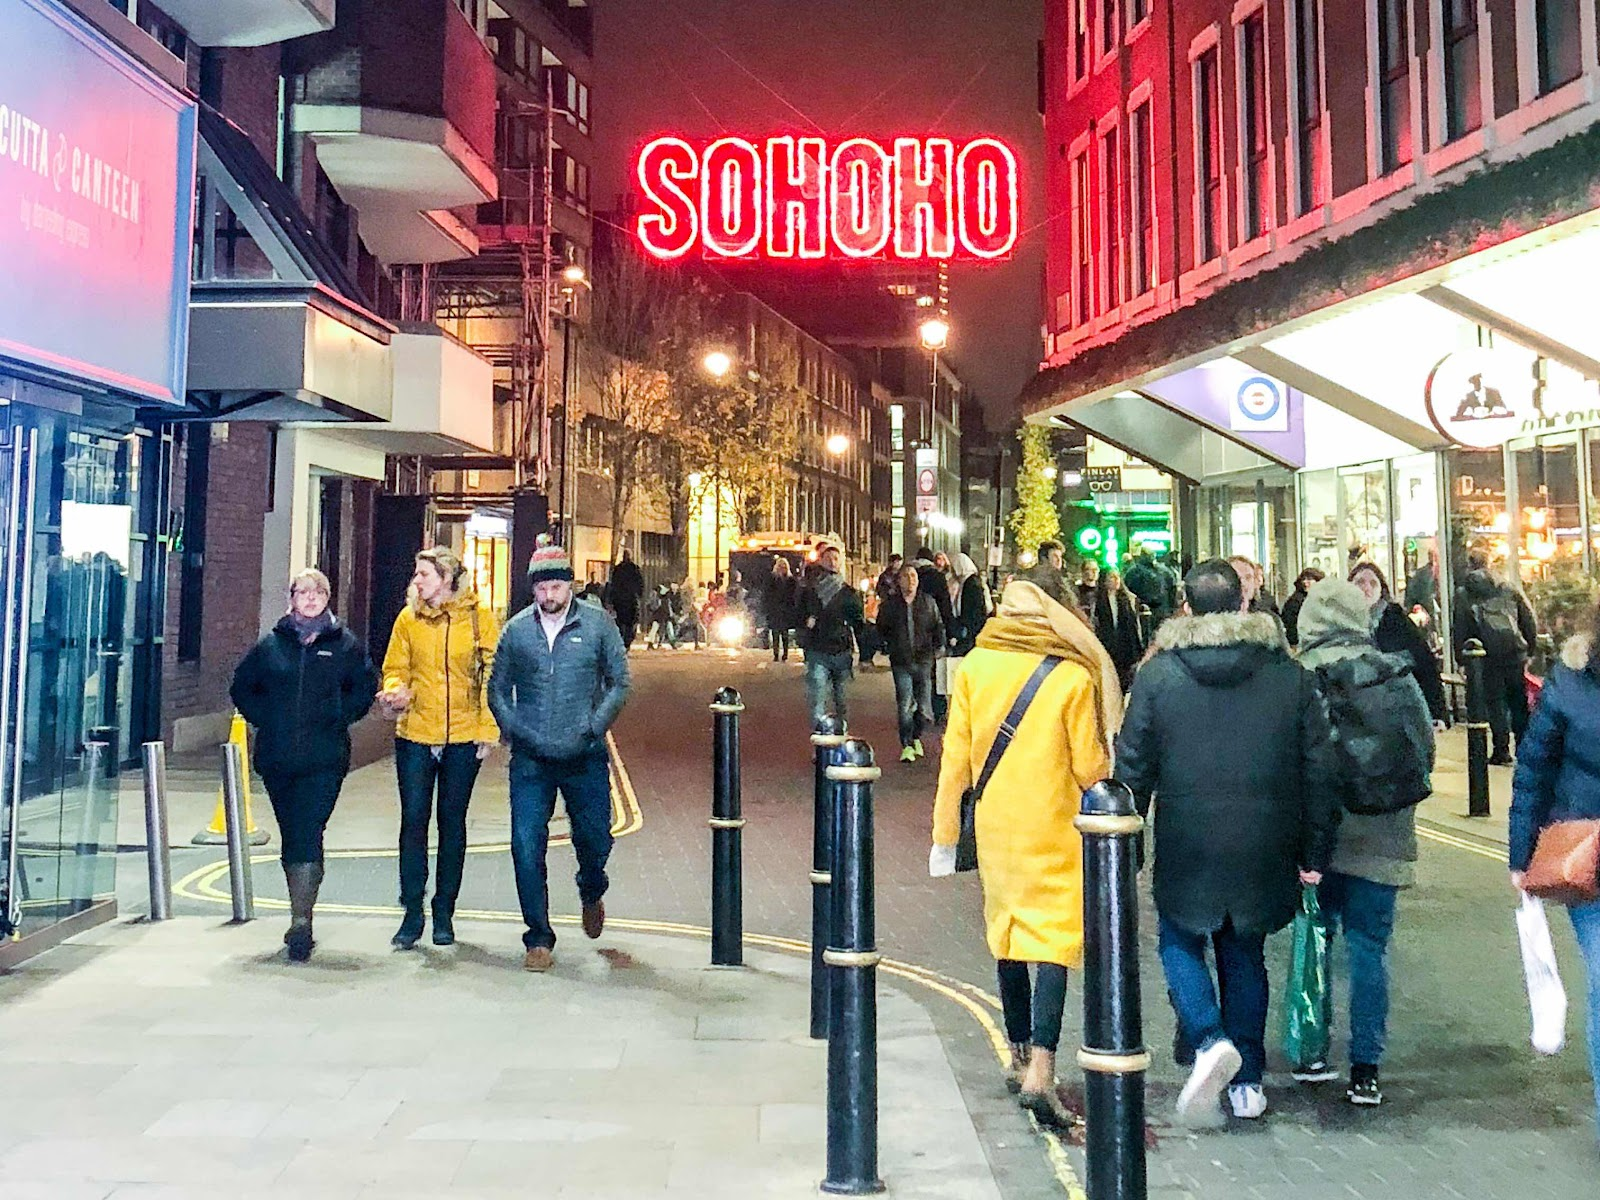 london-lifestyle-blog-top-10-things-to-do-in-soho